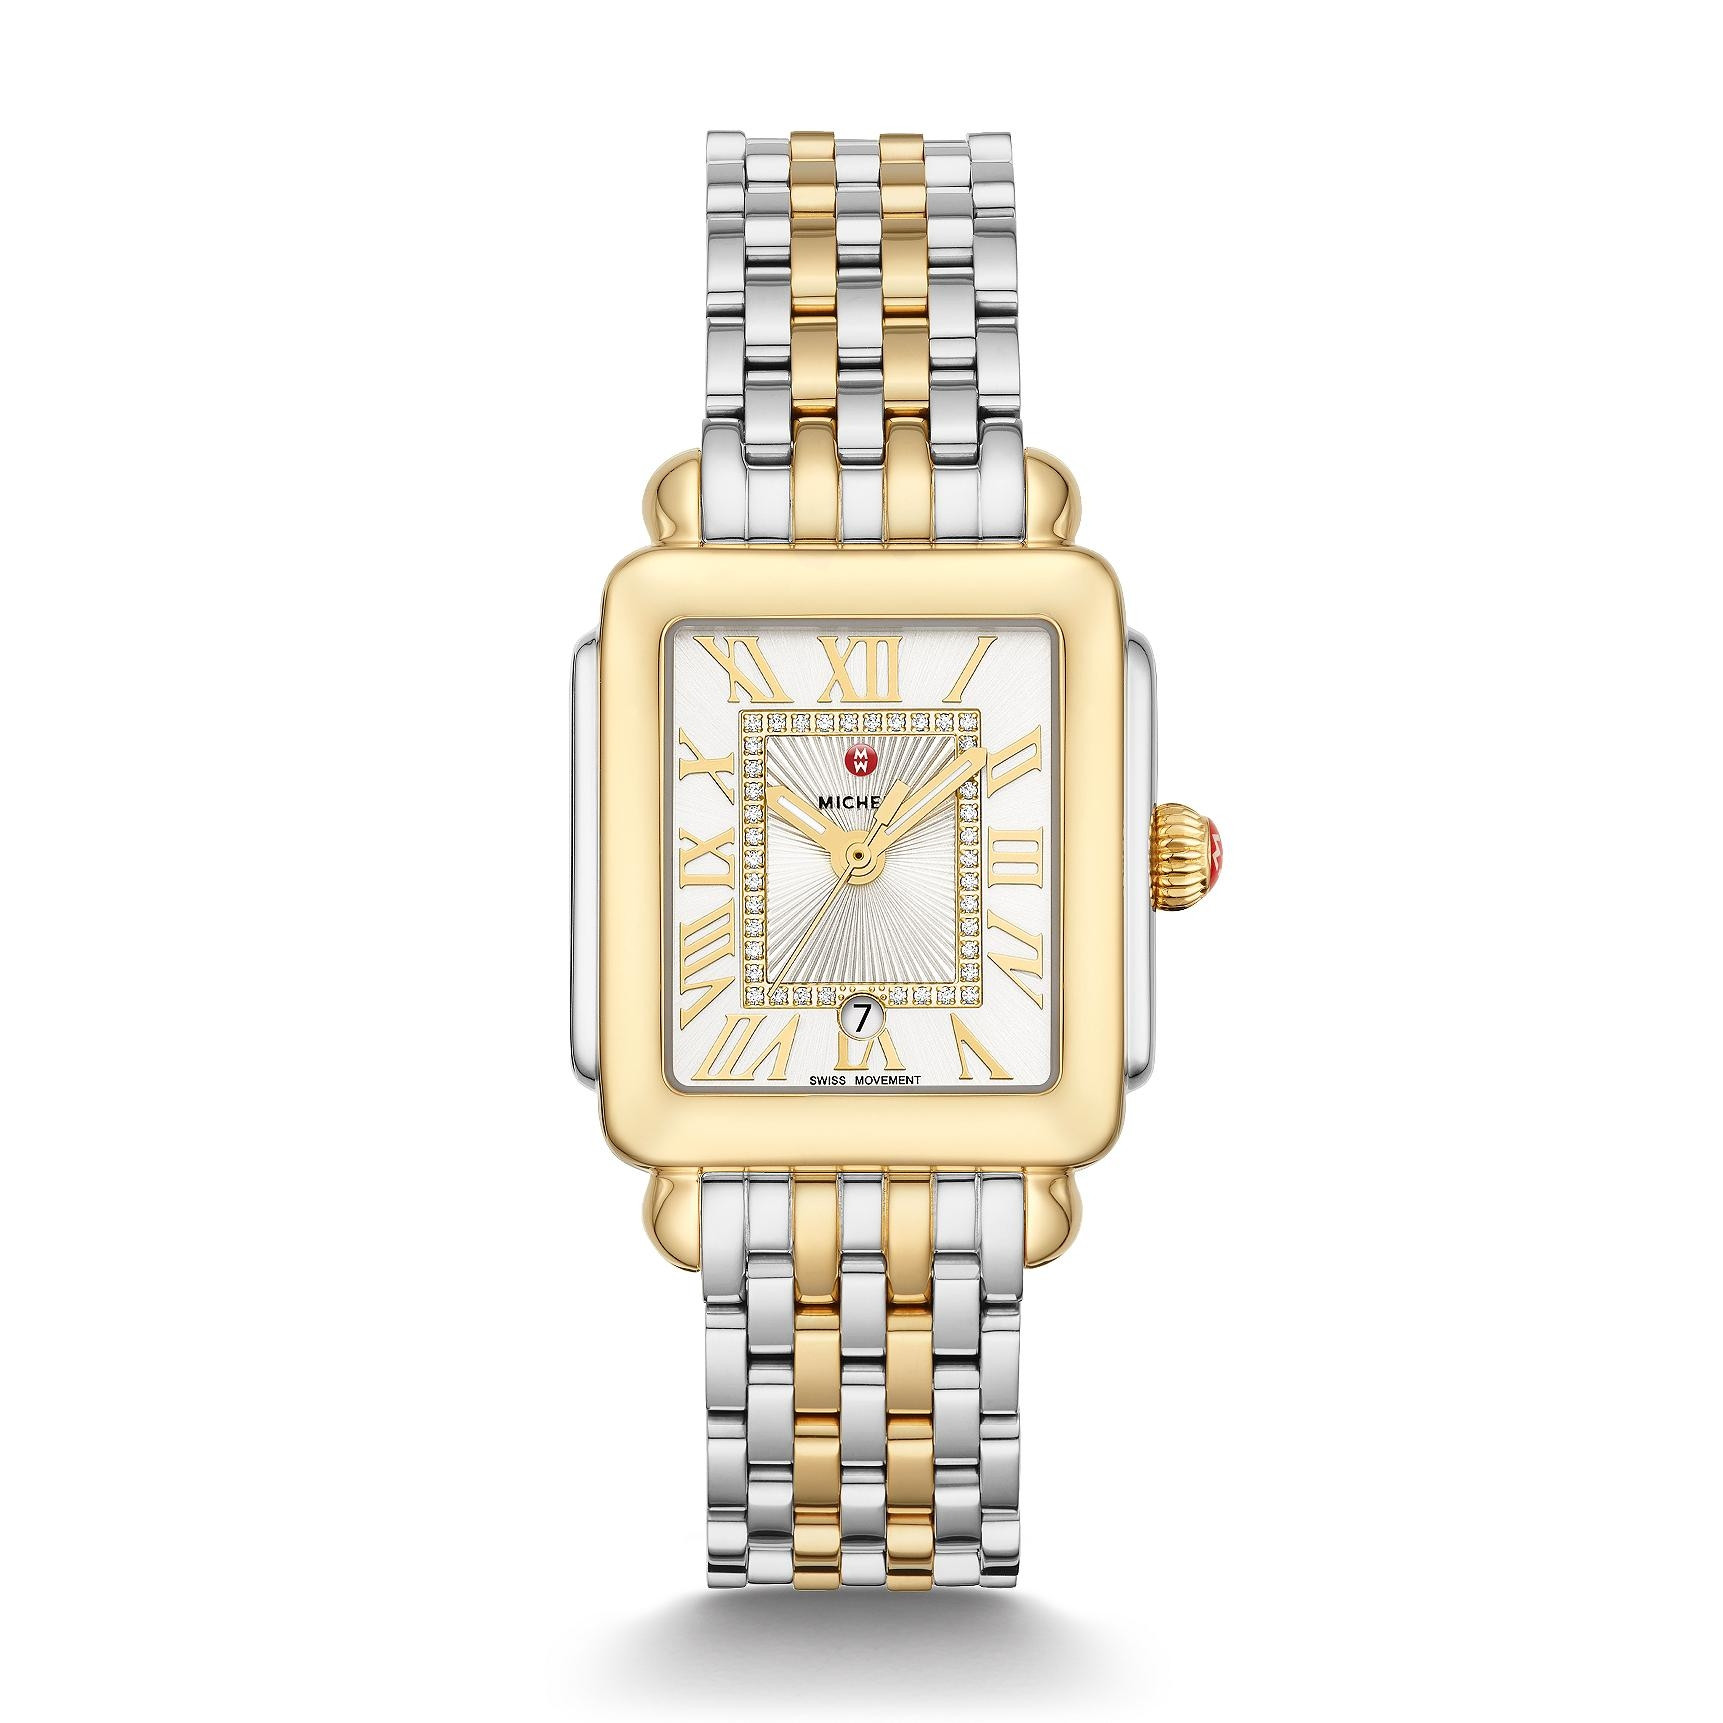 Michele Deco Madison Mid Diamond Dial Watch in Silver and Gold full view